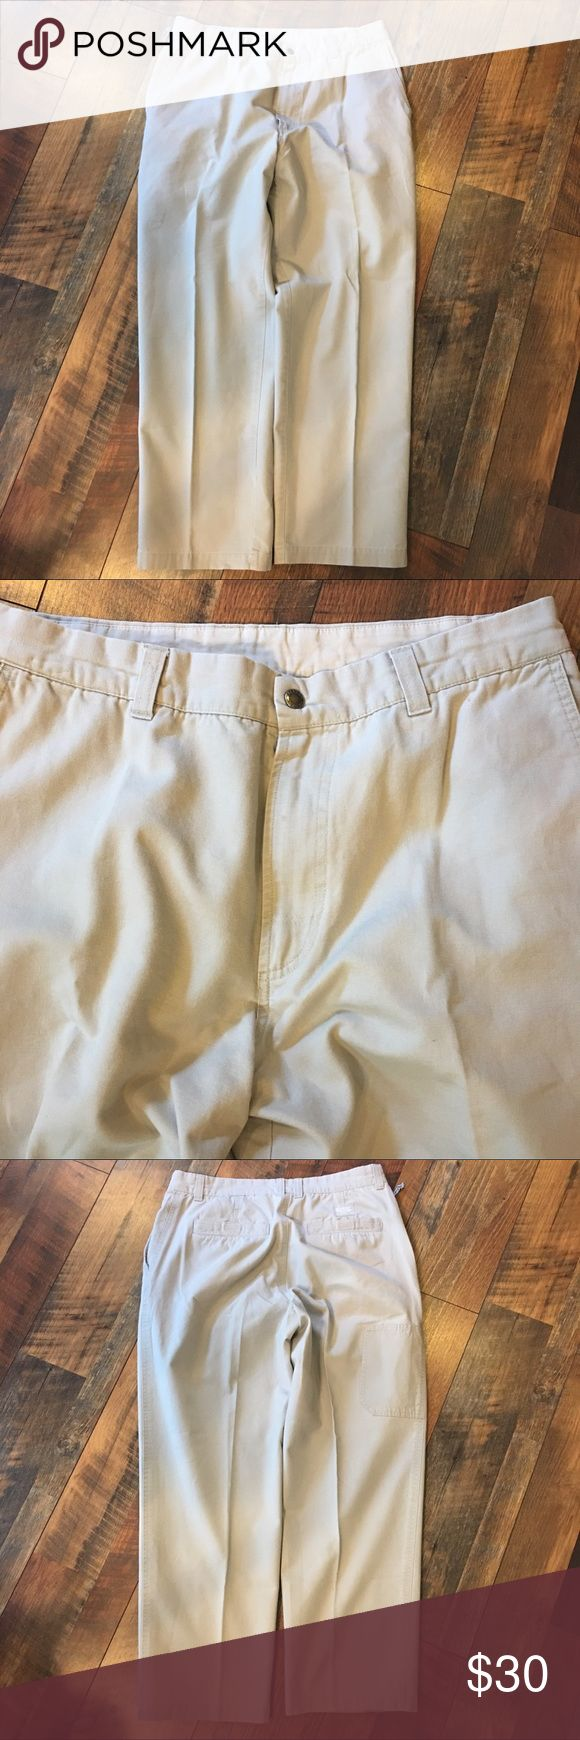 "Columbia Sportswear Khakis Carpenter Jeans Size 36 This is a pair of Men's Columbia Sportswear Canvas Khakis Carpenter Jeans with Side Zip pocket. Size 36 30. The inseam on these pants are 29"". These pants are still in excellent gently used condition and have no visible defects or signs of ware. Please take a look at all photos for condition and if you have any questions feel free to ask. Columbia Sportswear Pants Chinos & Khakis"